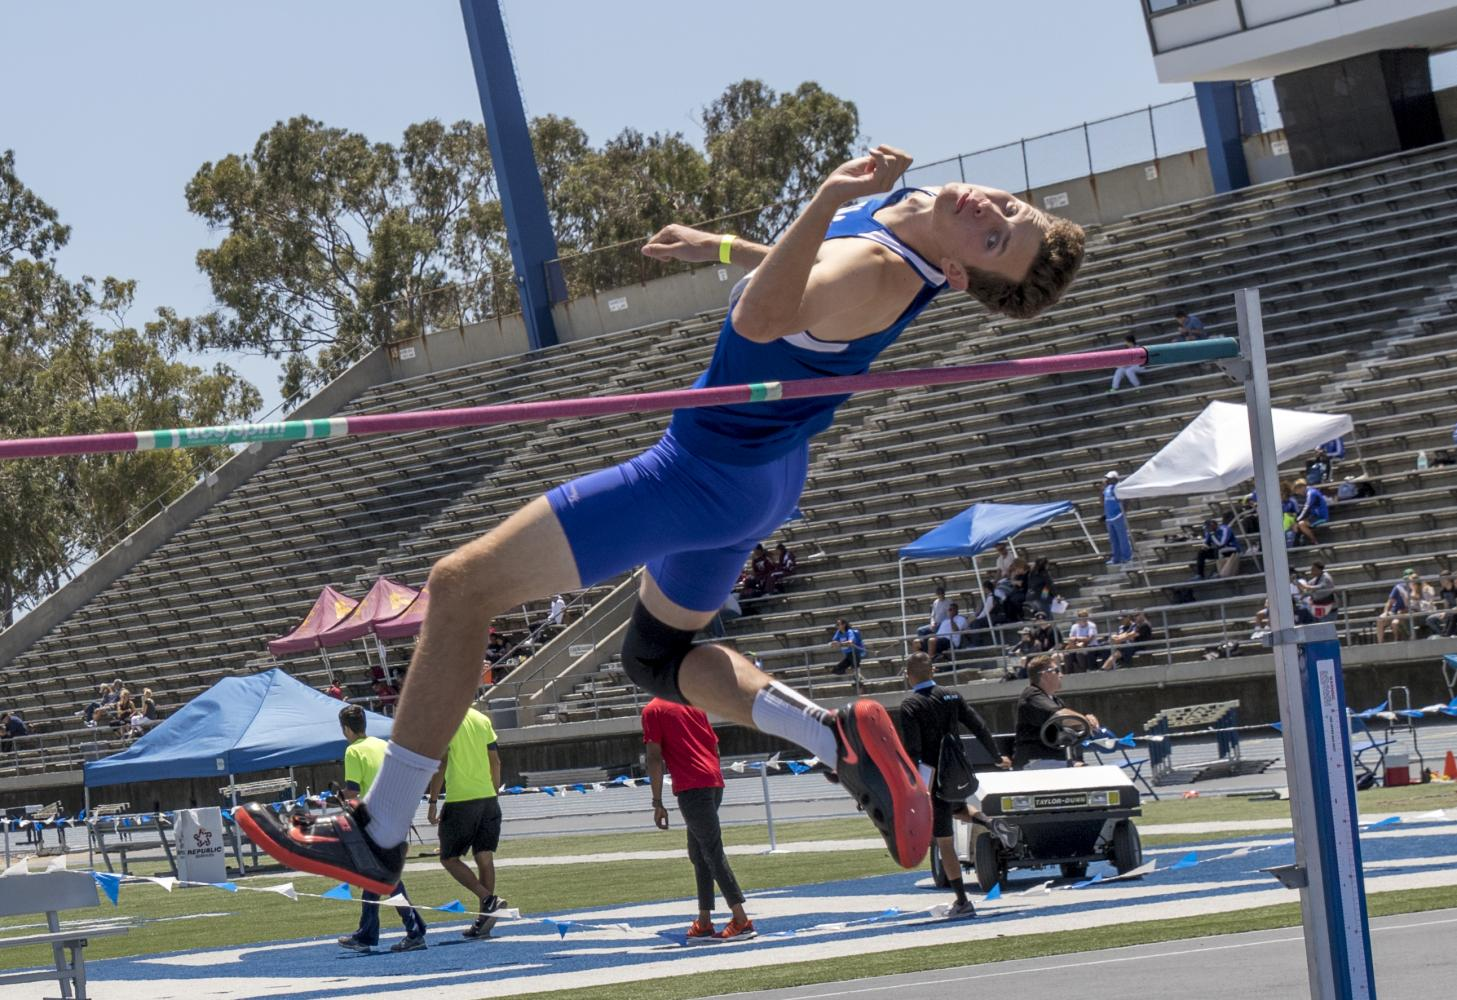 Santa Monica College sophomore Sitrling McCulloch leaps over the bar as he competes in the high jump competition at the CCCAA (California Community College Athletics Association) Southern California Regional Prelims and Championship on May 13, 2017 at Cerritos College in Cerritos. (Zane Meyer-Thornton)